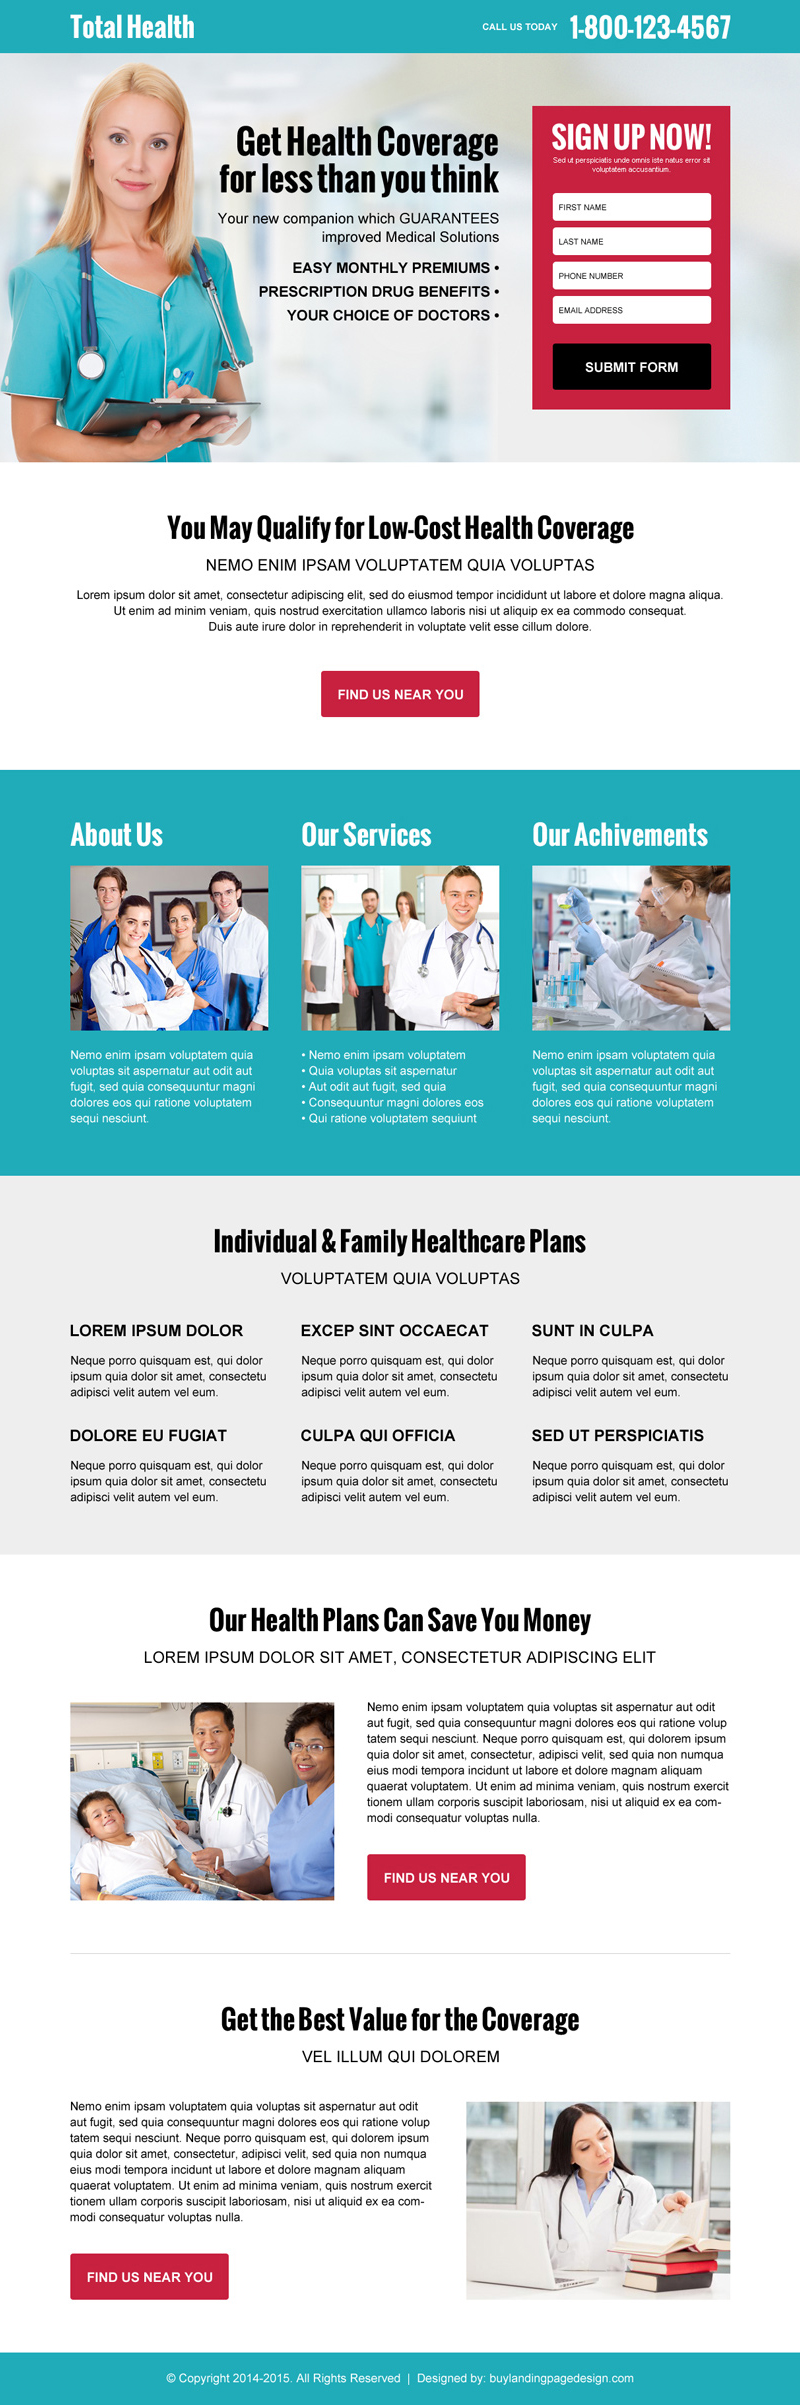 Best Landing Page Designs Trusted By Top Online Marketers - High converting landing page templates